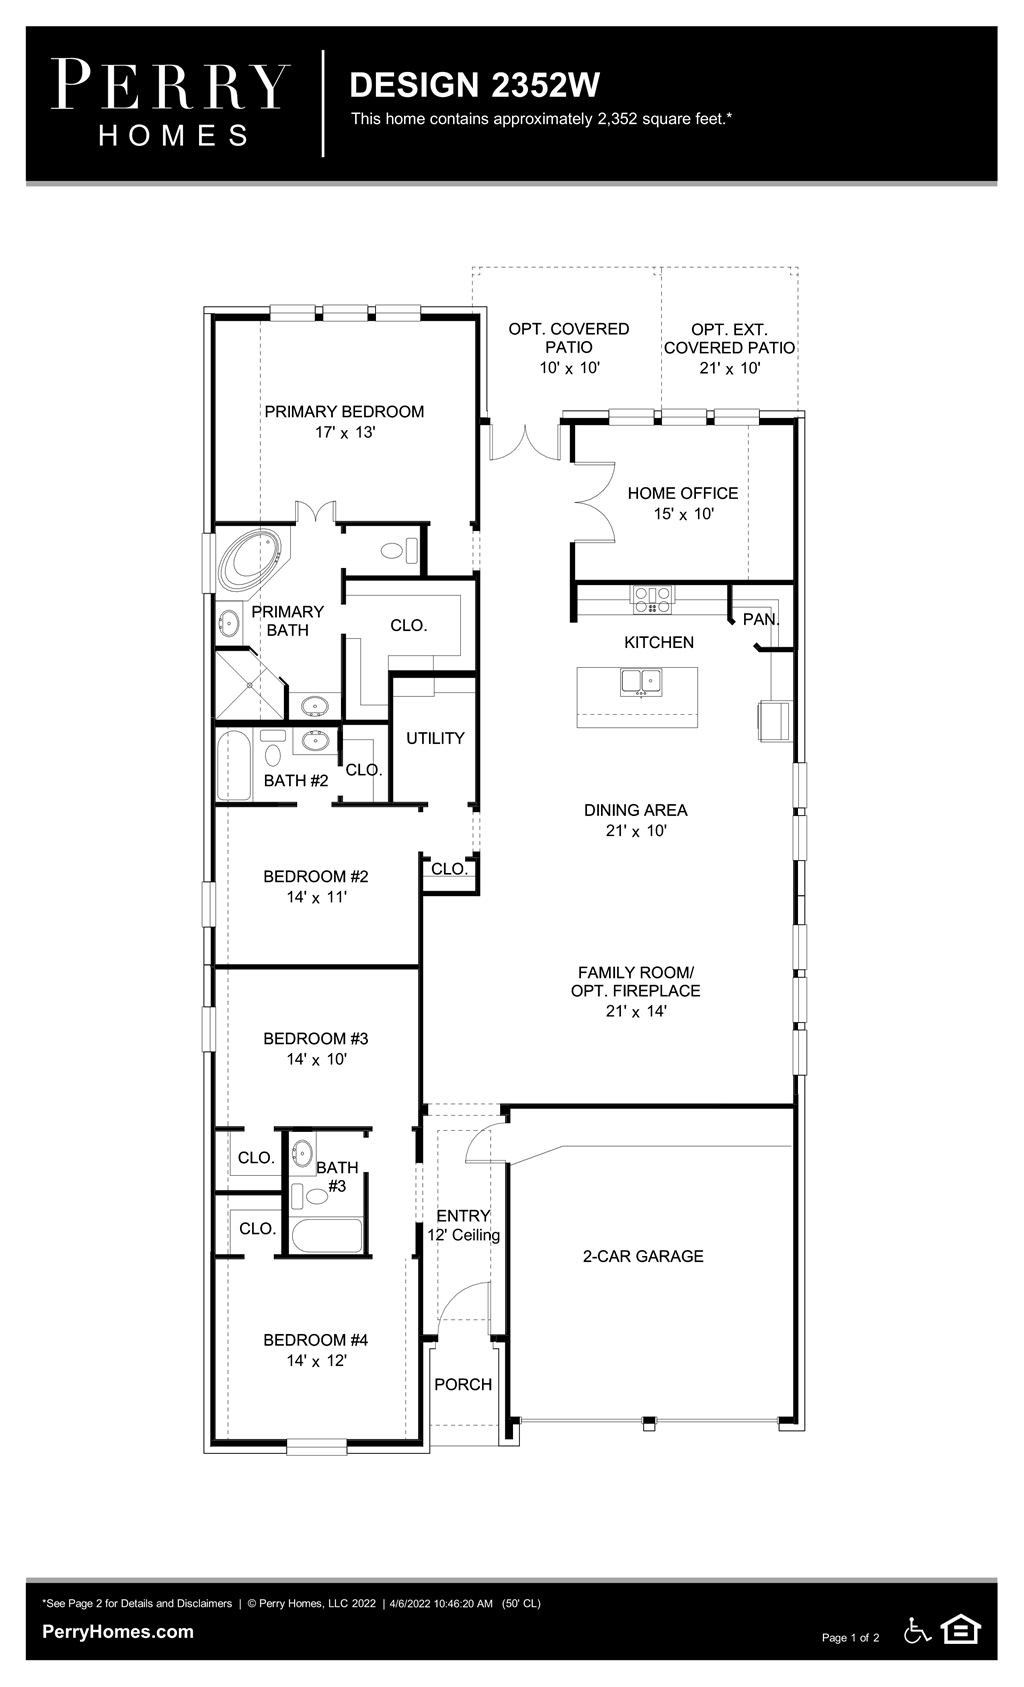 Floor Plan for 2352W